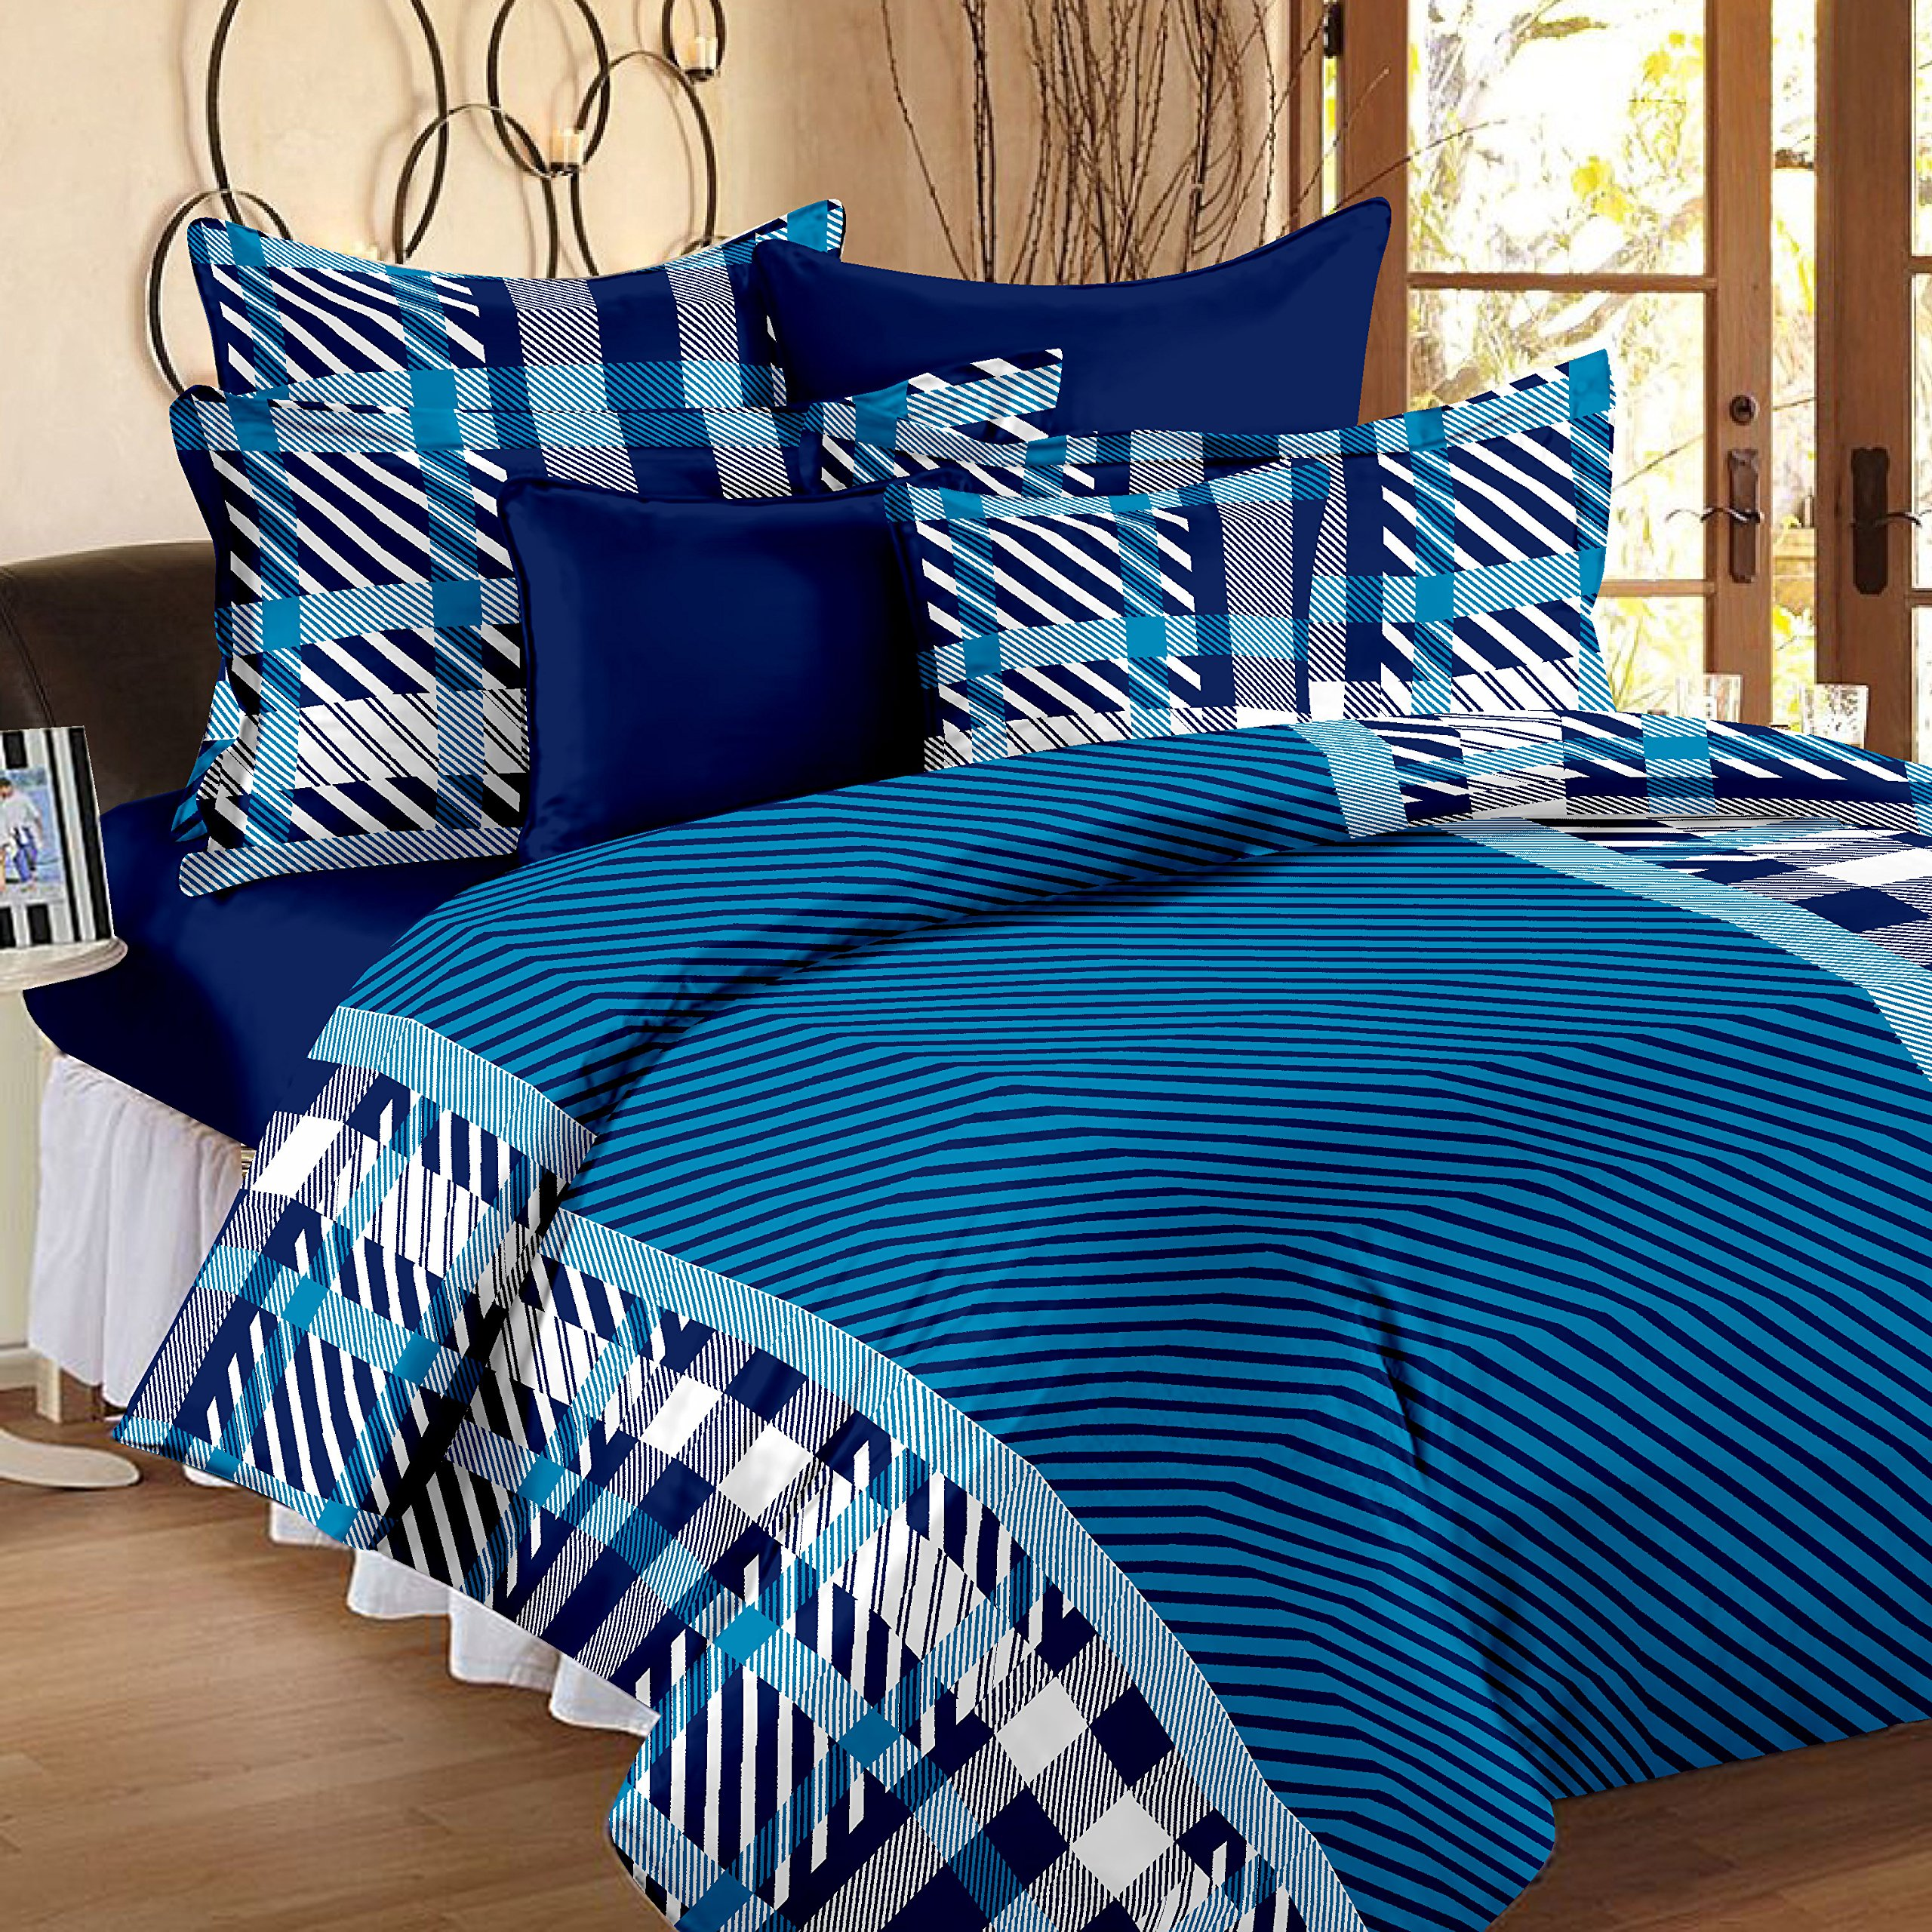 Bed Sheets by Material